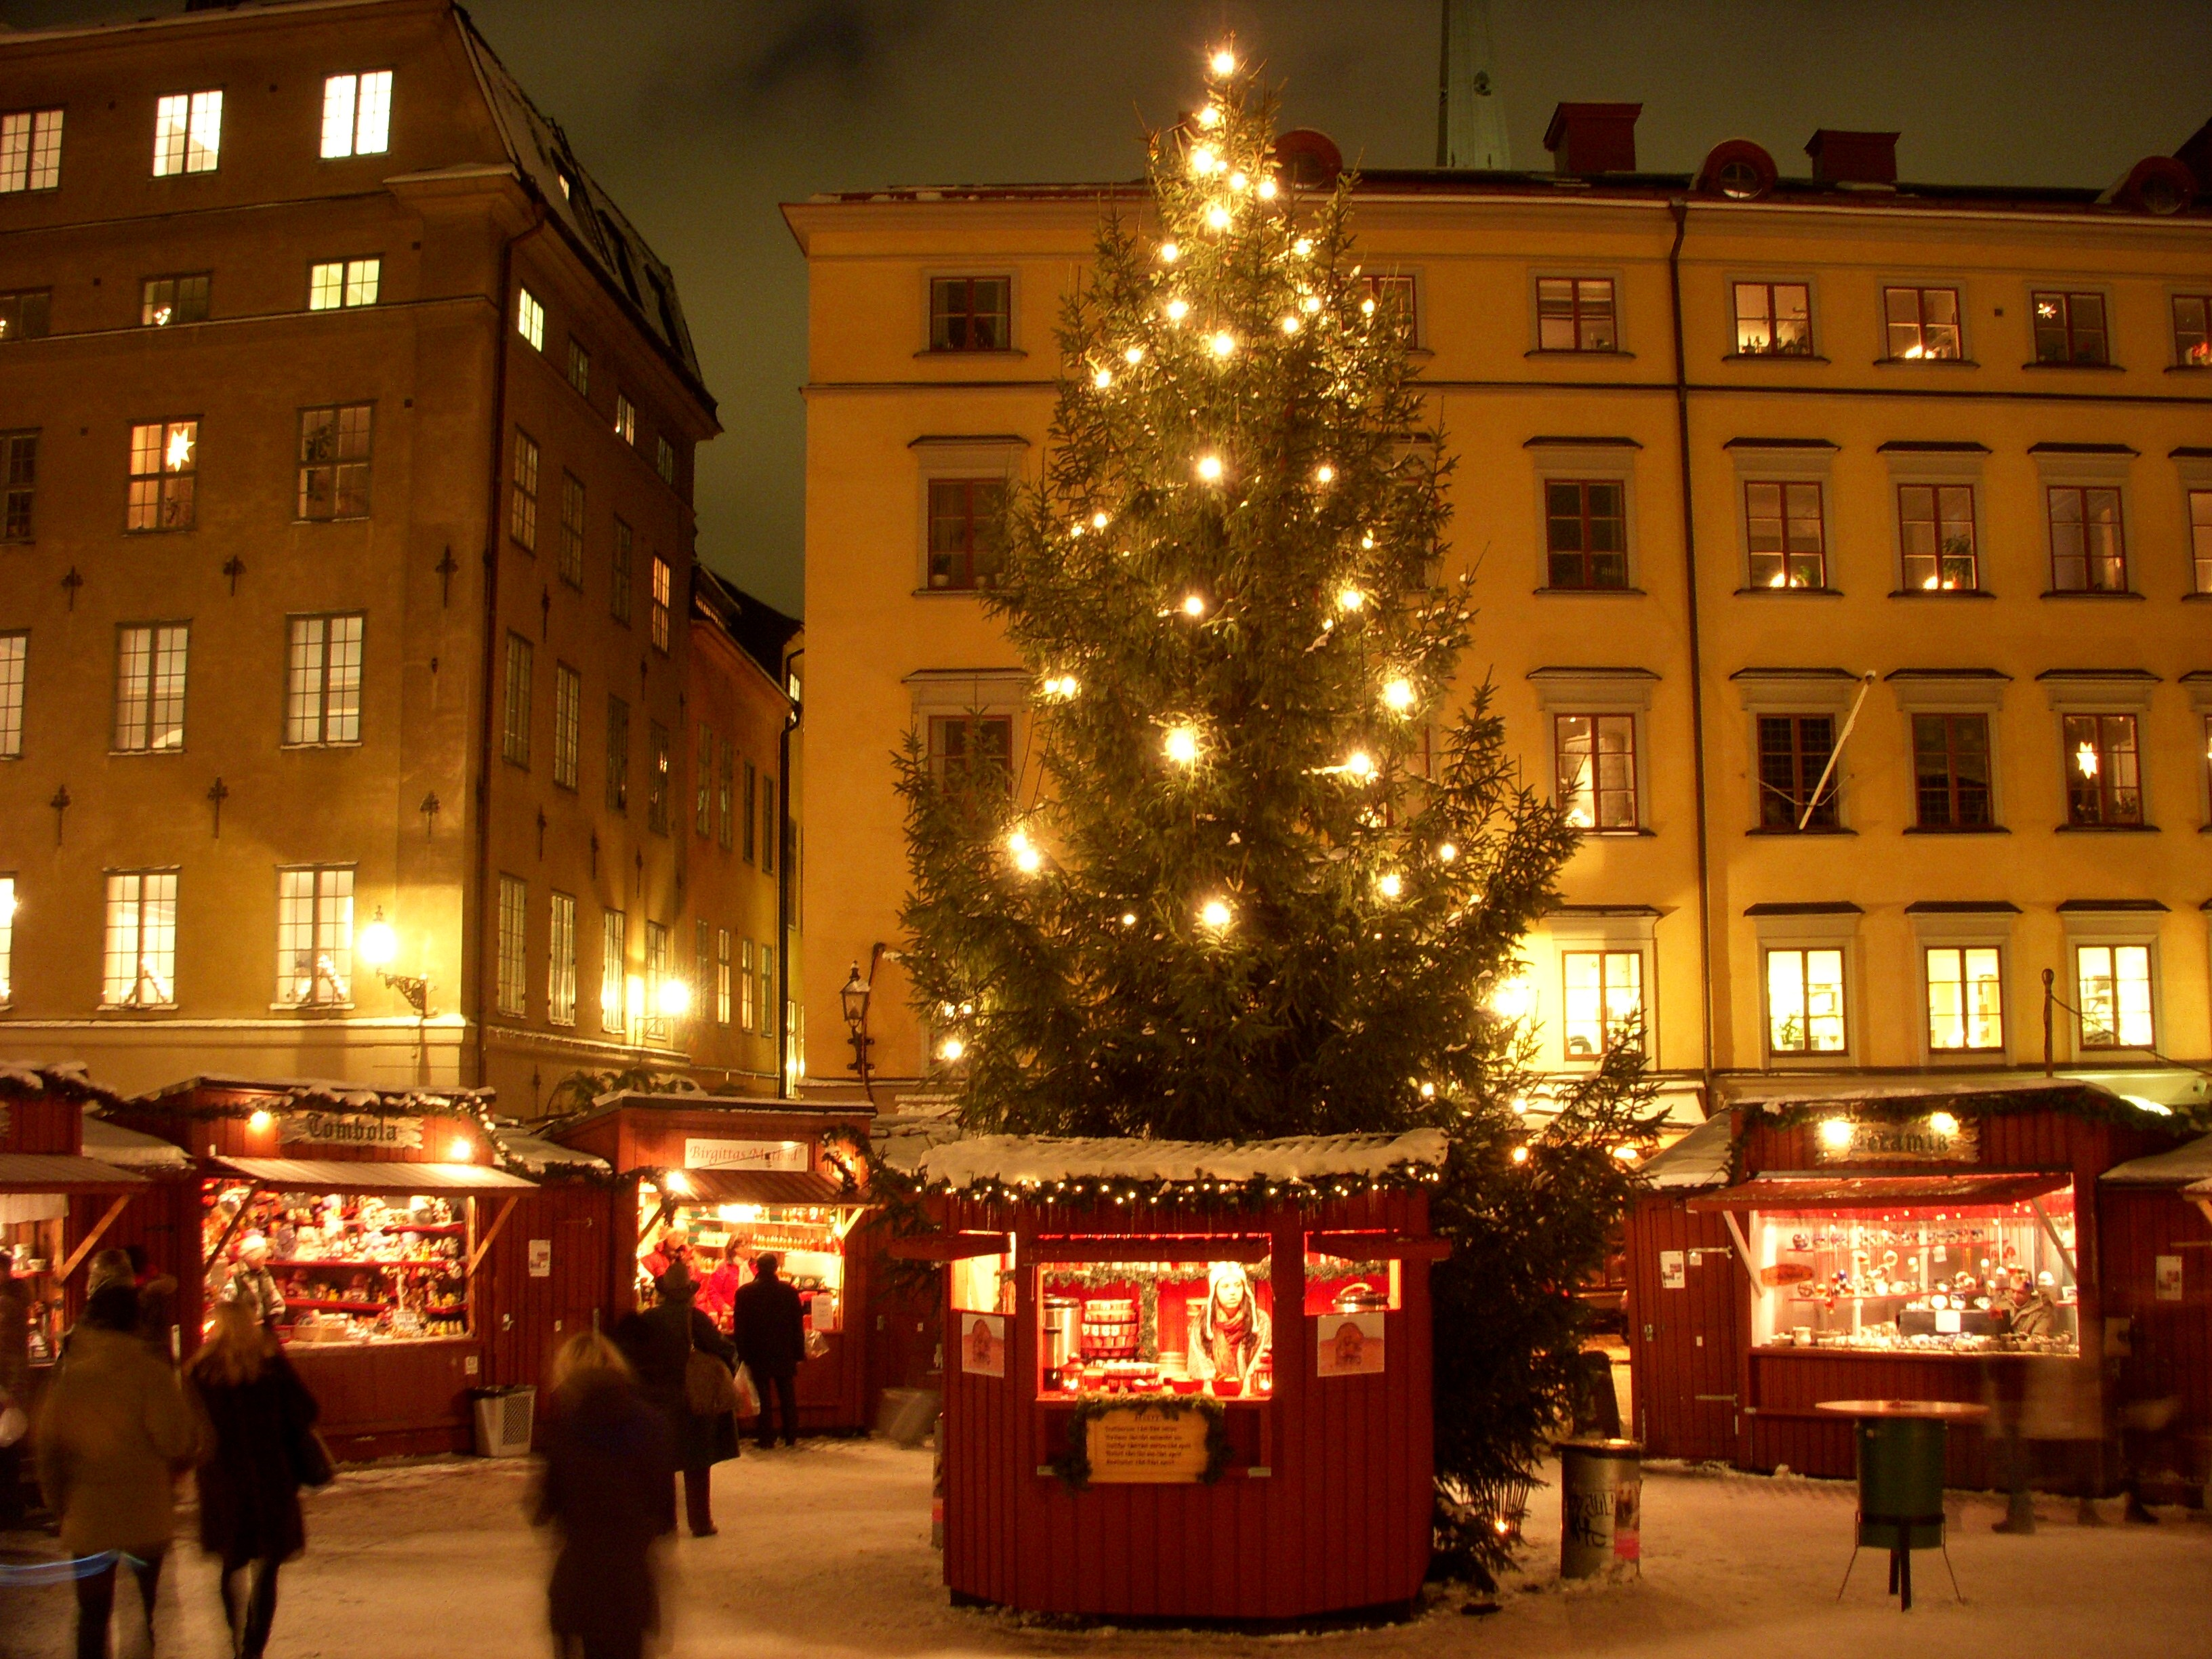 file gamla stans julmarknad wikimedia commons. Black Bedroom Furniture Sets. Home Design Ideas